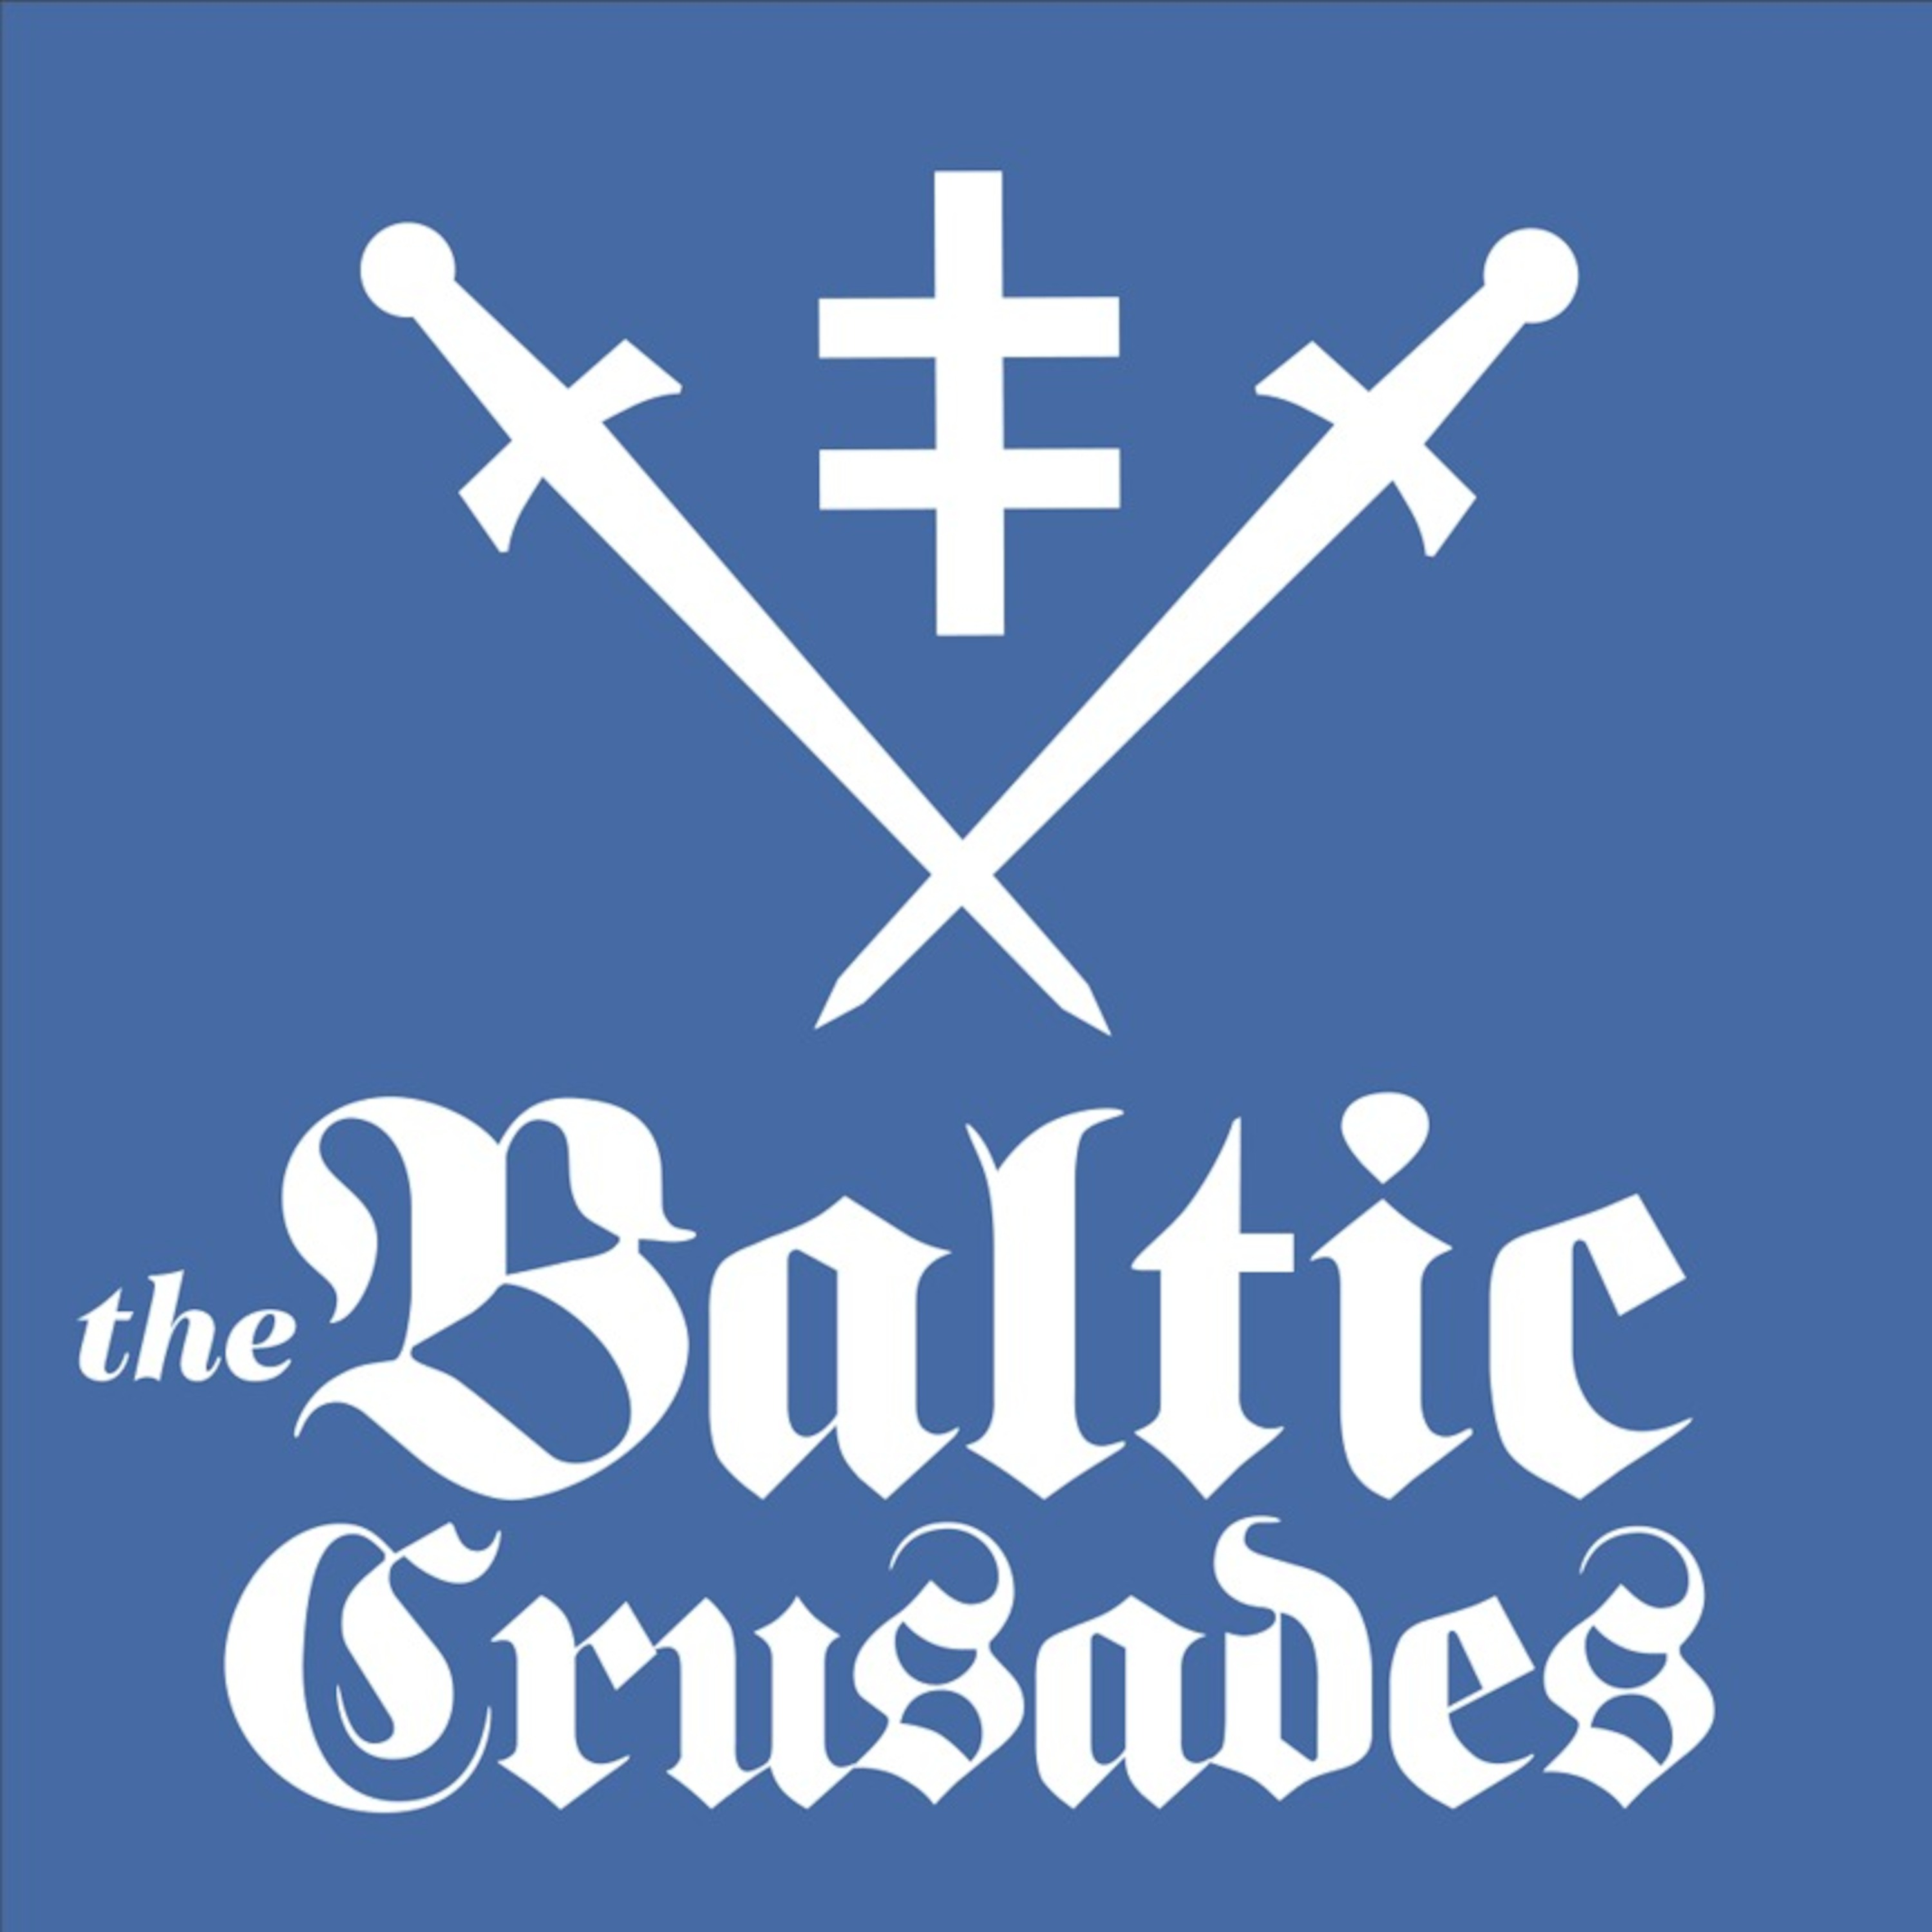 The Baltic Crusades